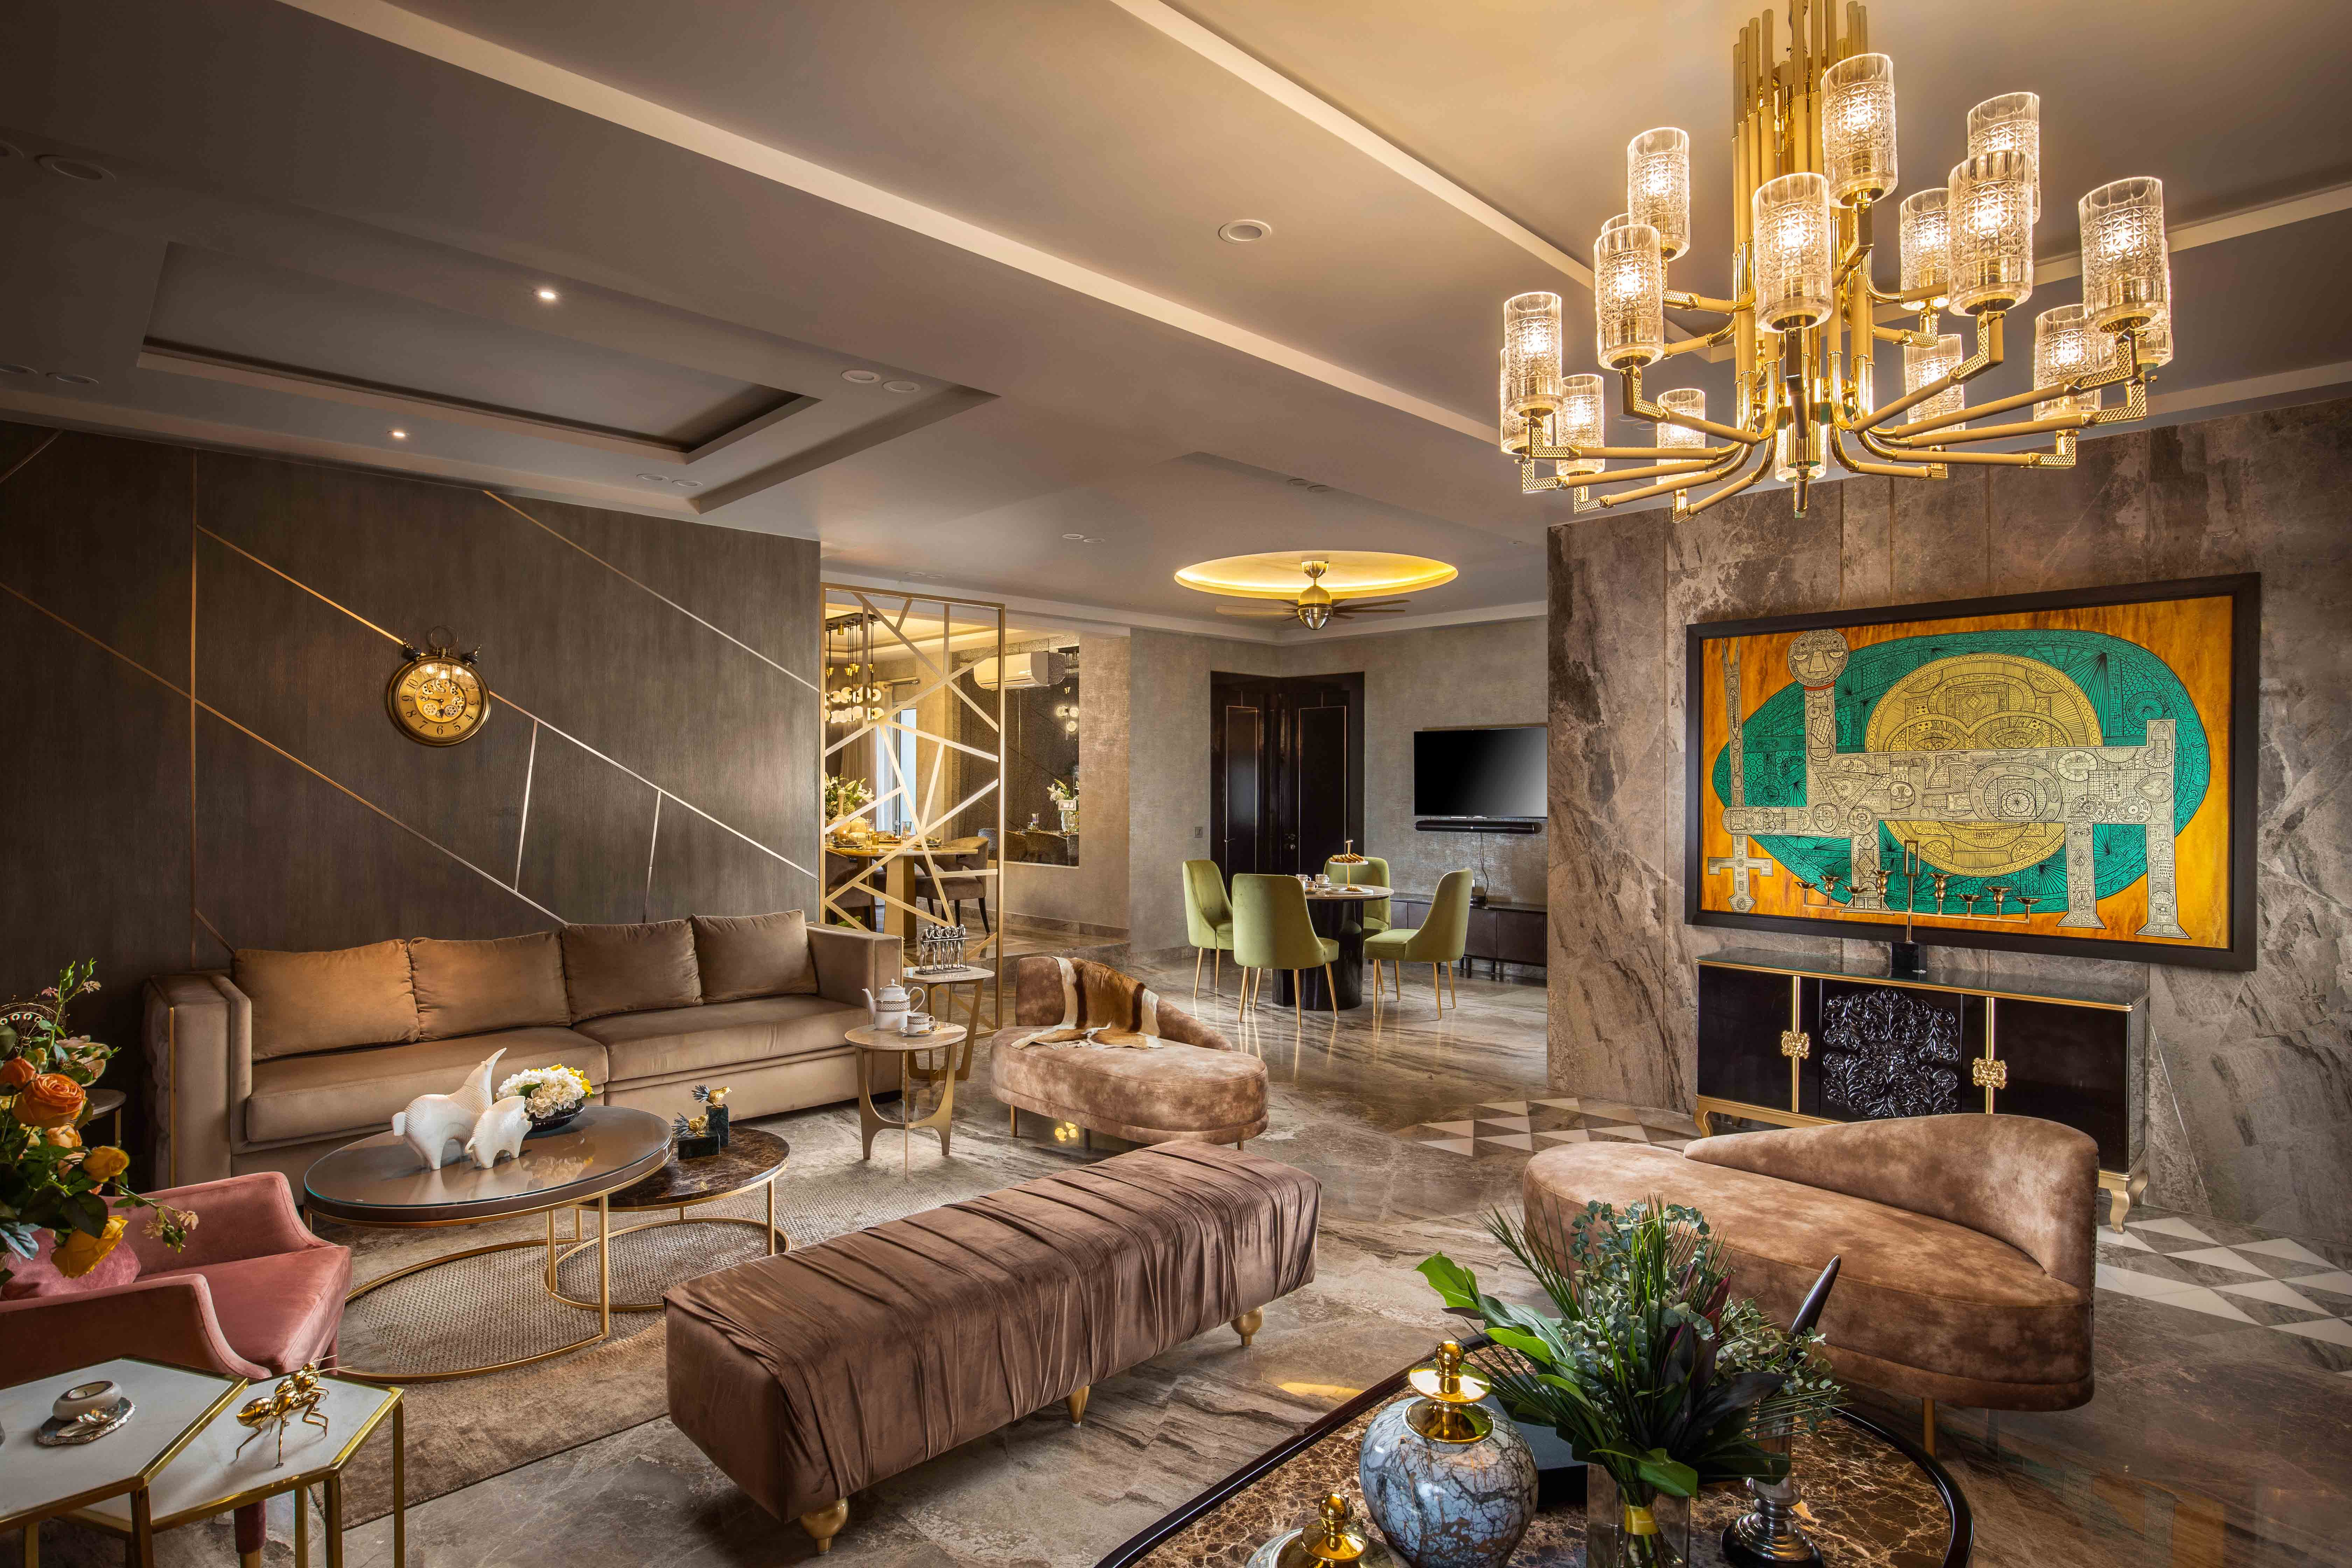 Meenu Agarwal of MADS Creations crafts an ornate abode at DLF Capital Greens